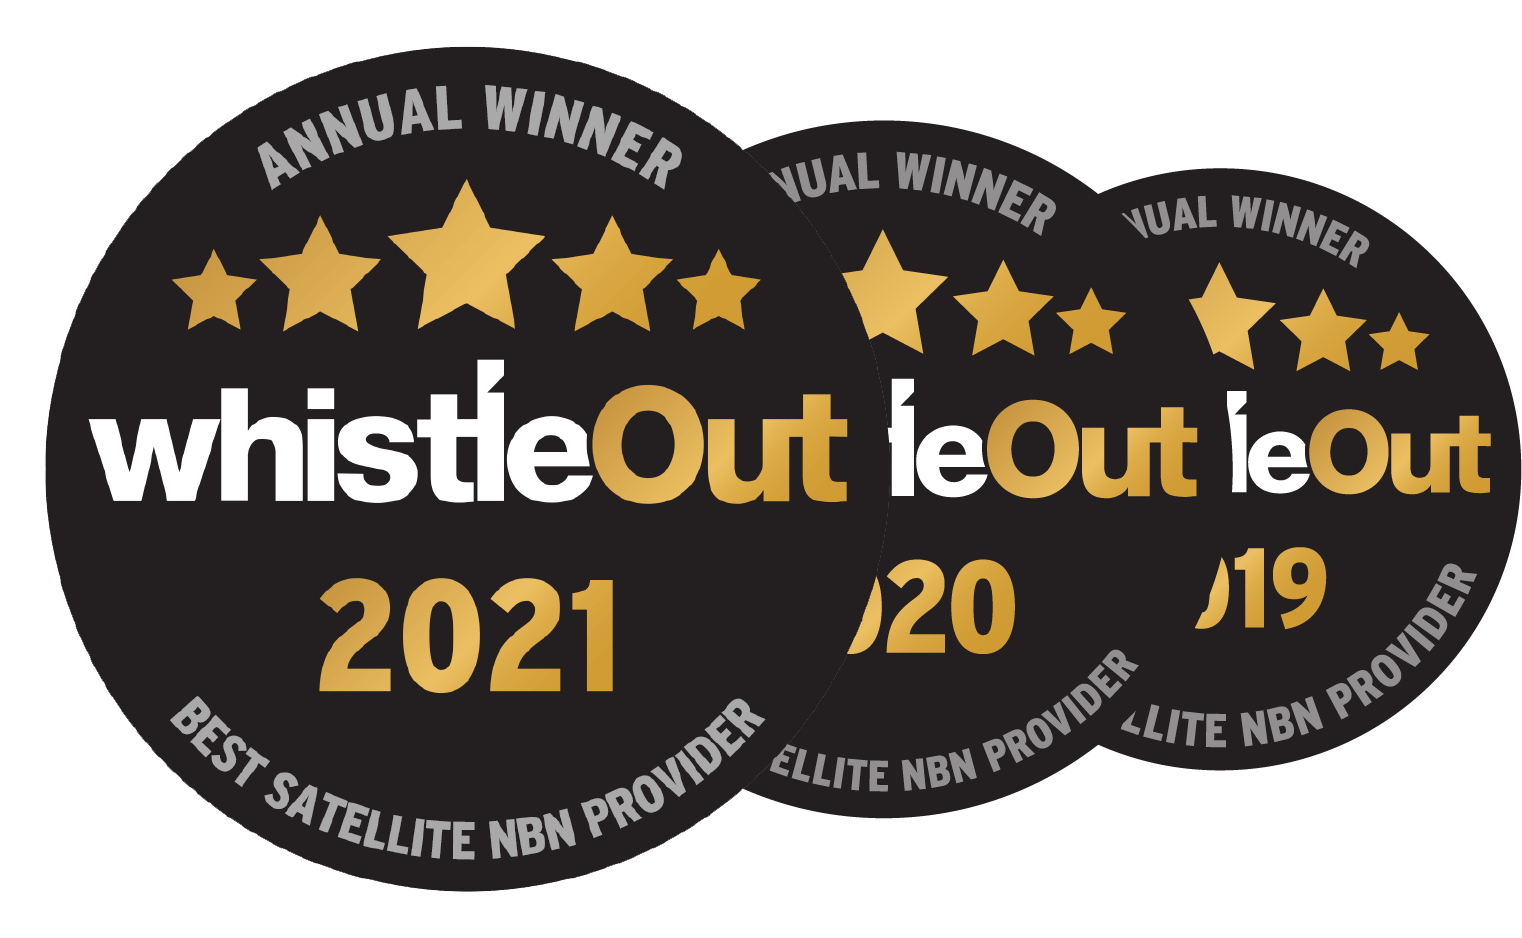 Skymesh wins whistleOut Best Satellite NBN provider in 2019, 2020 and 2021